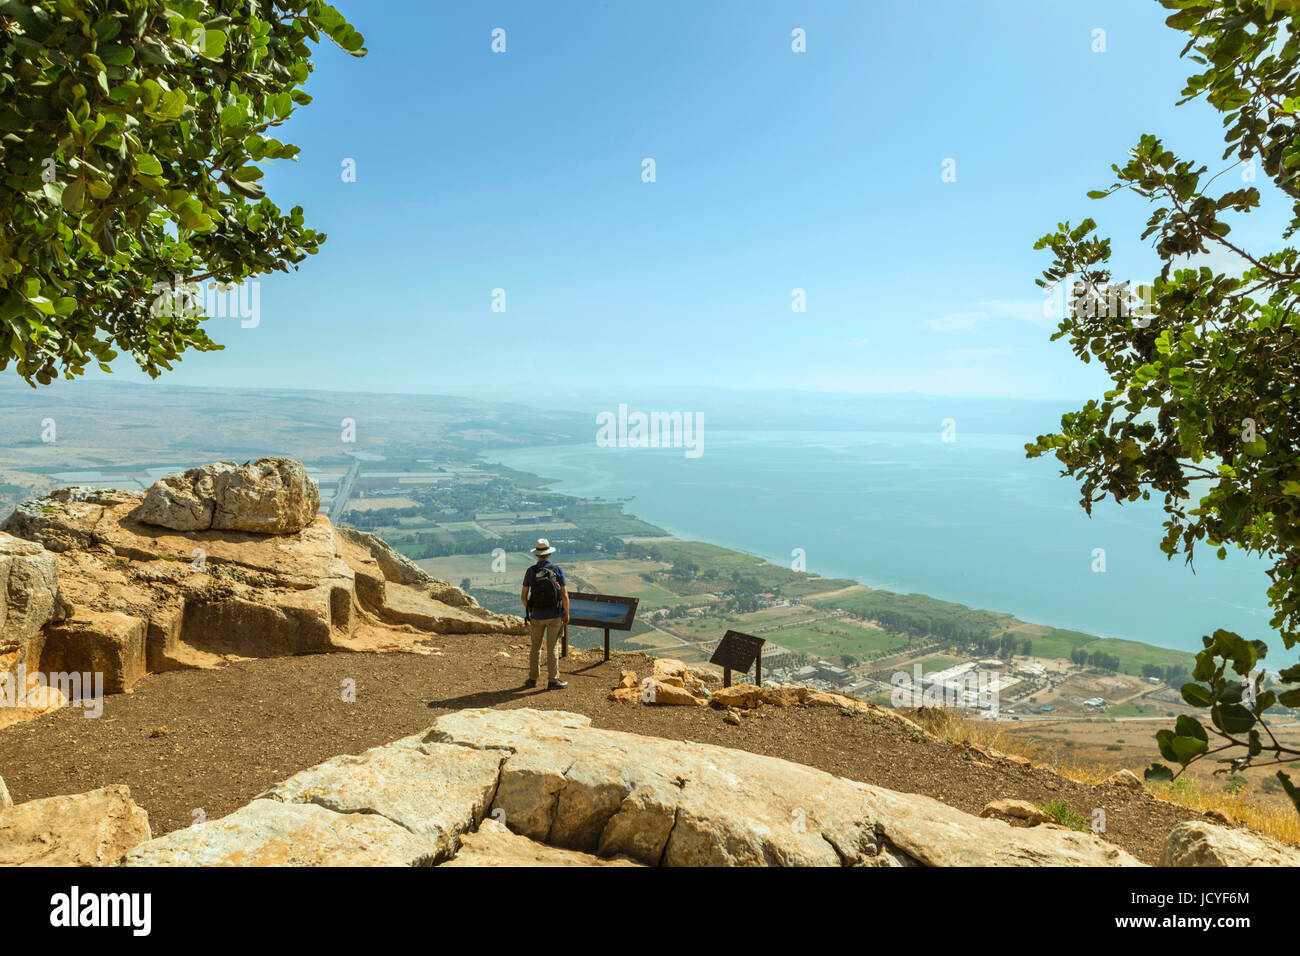 A scenic view of the Sea of Galilee from Mount Arbel, Lower Galilee,  Israel. - Stock Image